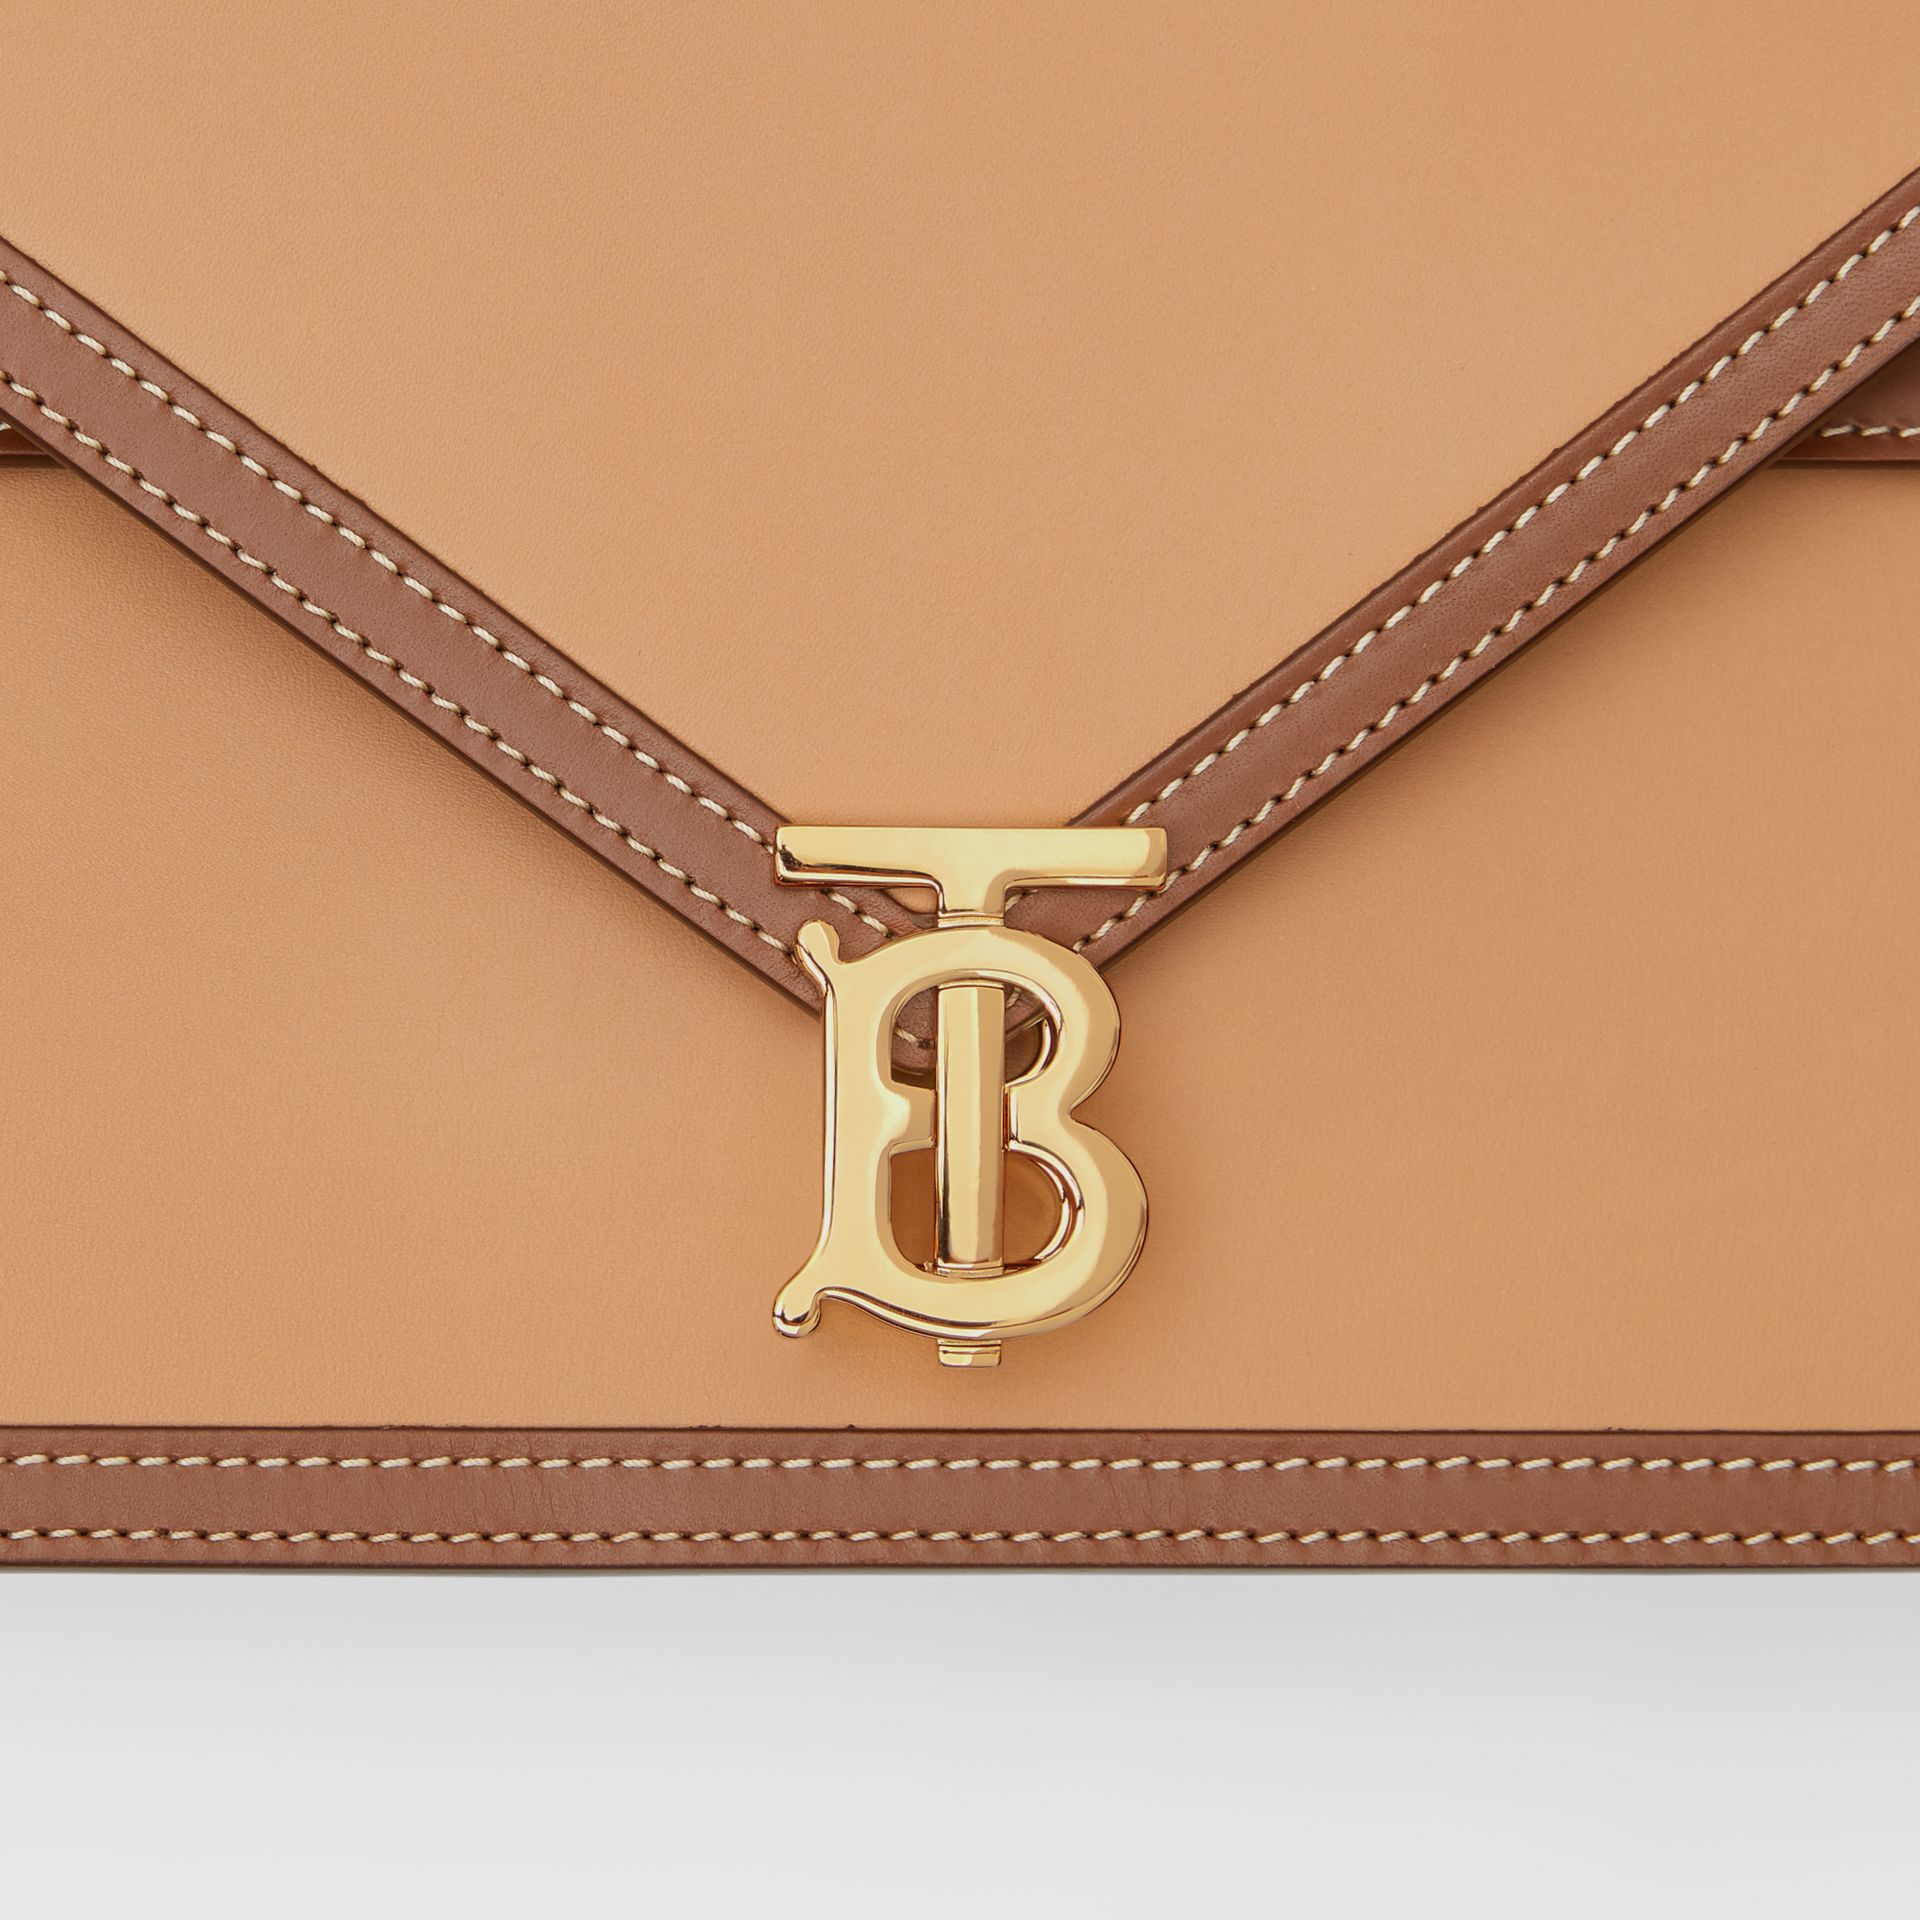 Small Two-tone Leather TB Envelope Clutch in Malt Brown - Women | Burberry - gallery image 7